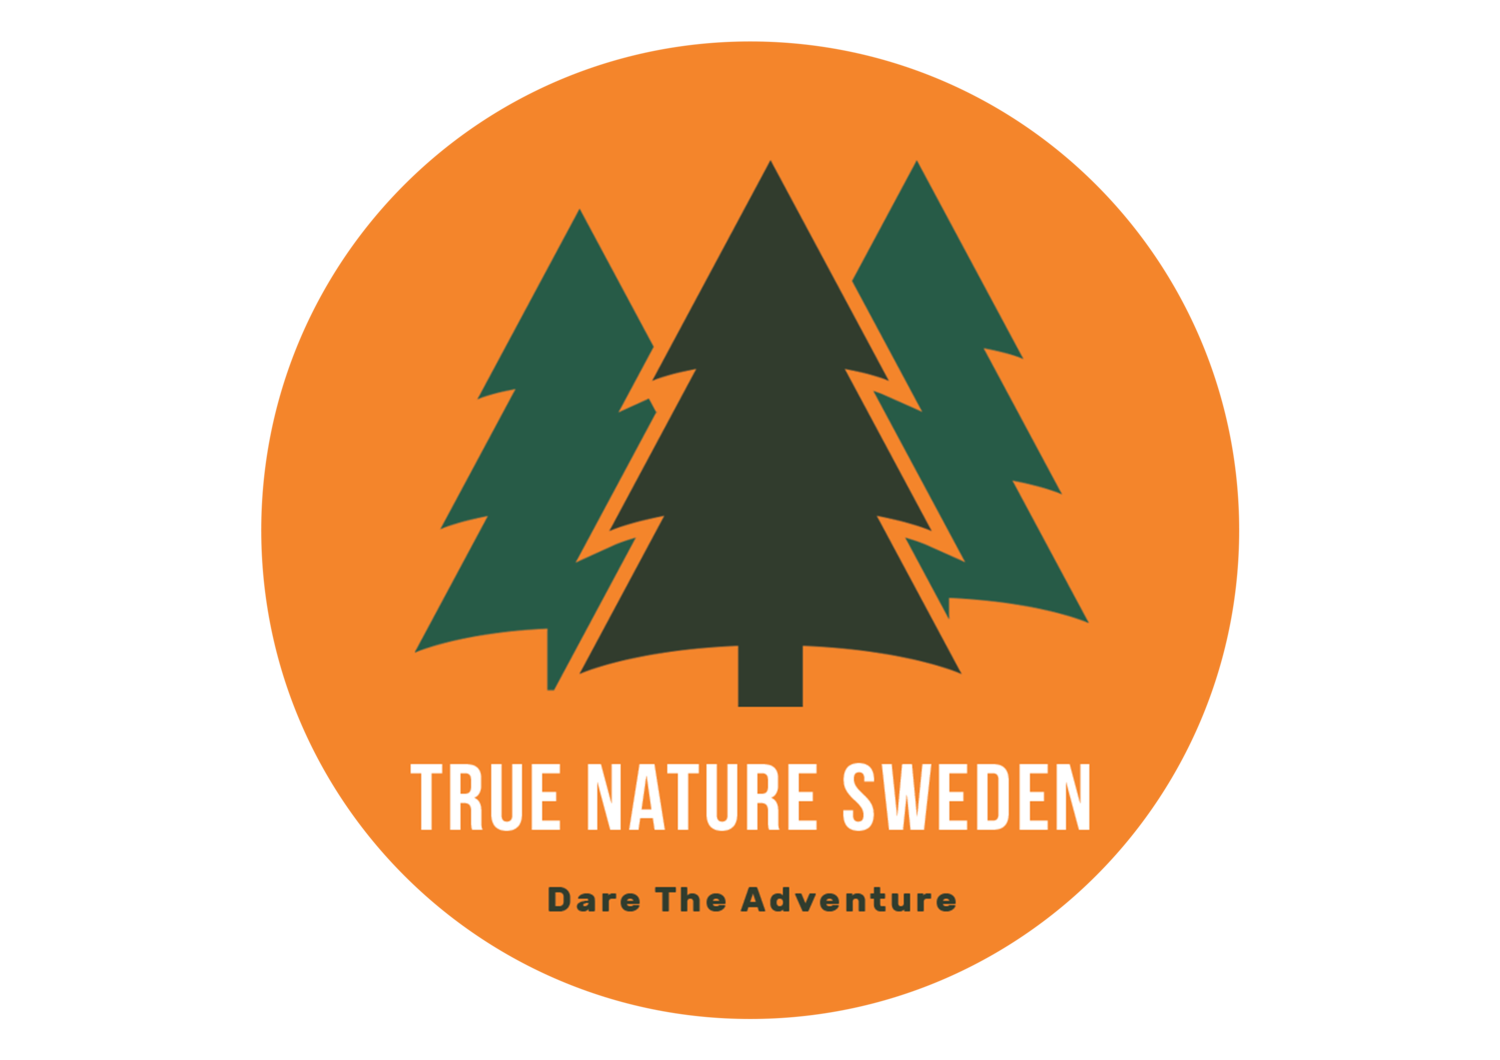 True Natures Sweden